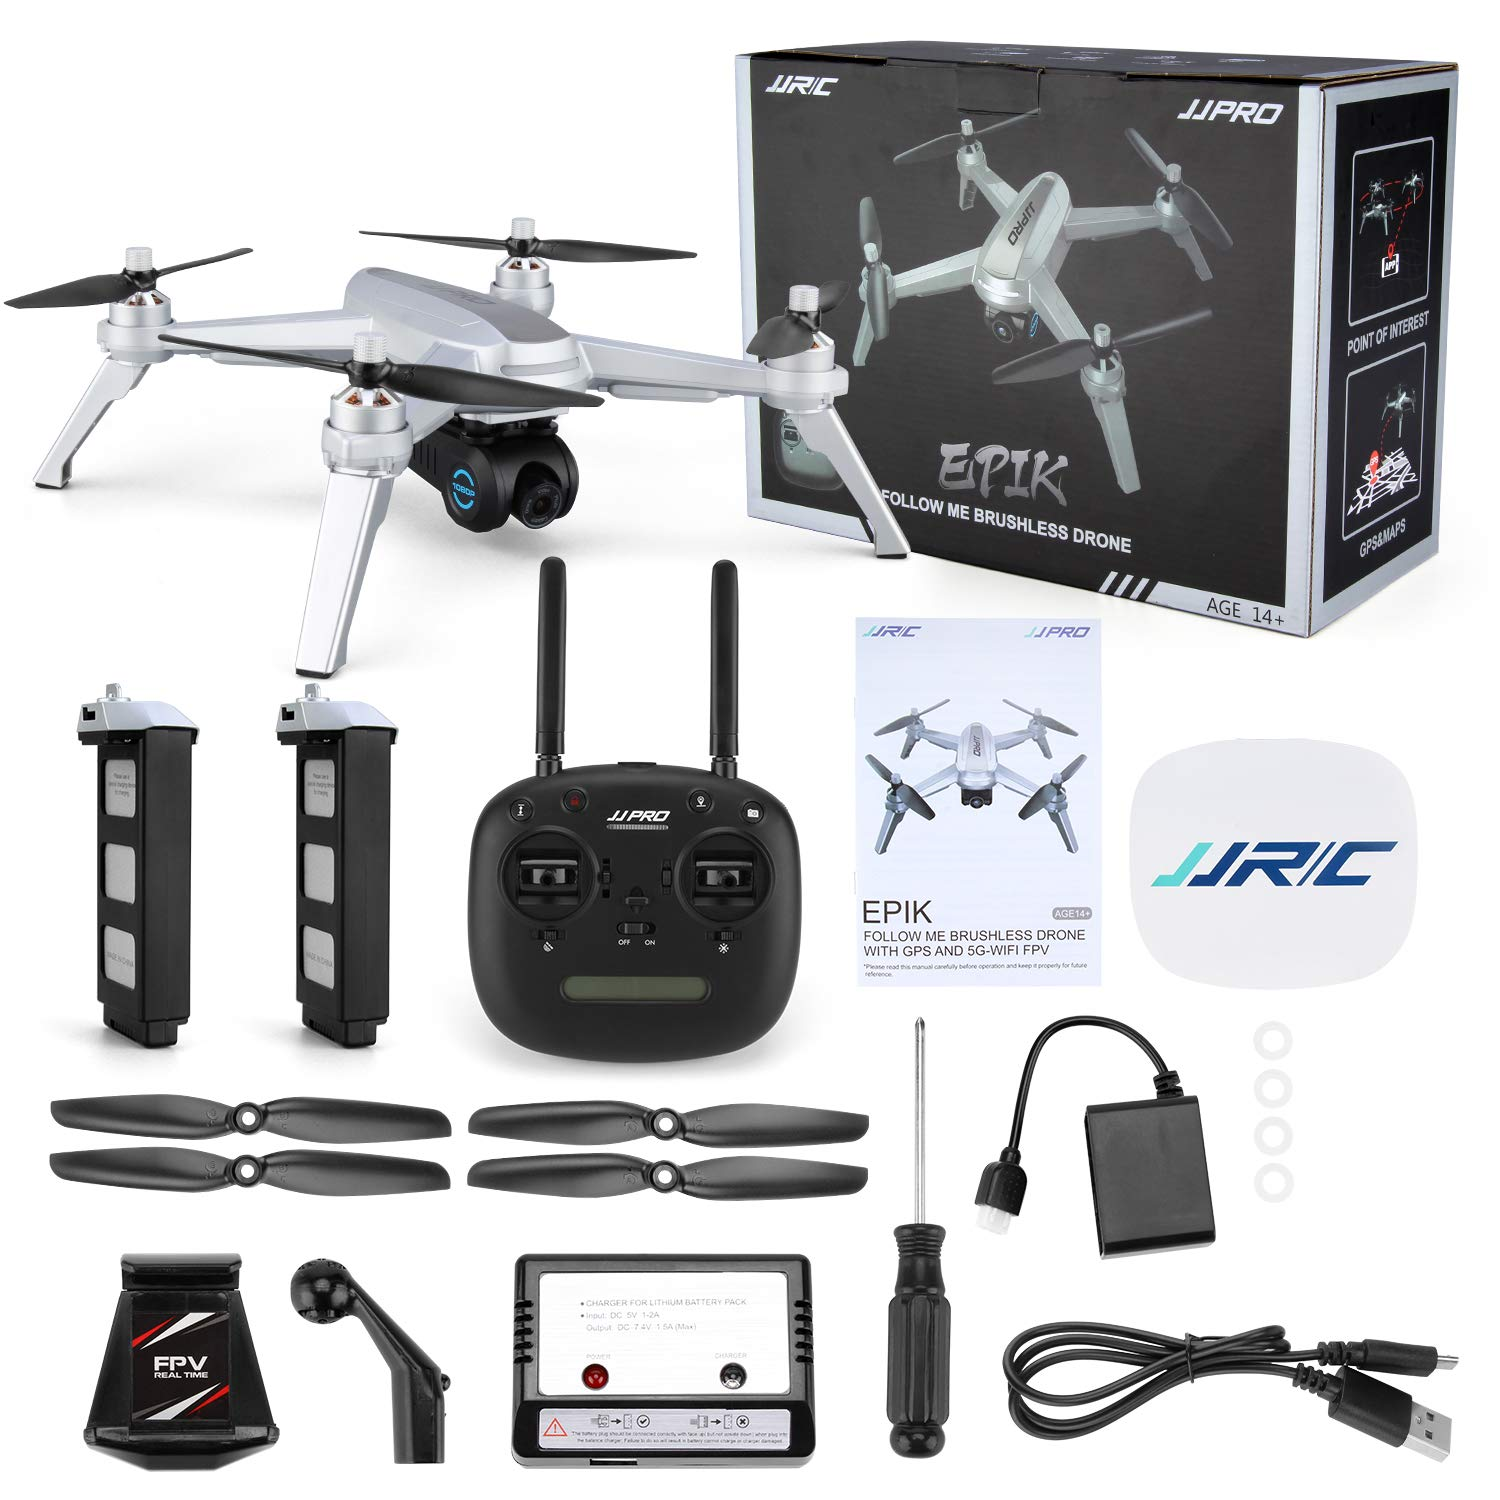 JJRC X5 FPV Drone with 1080P HD Camera Live Video Long Control Range GPS Return Home Quadcopter with Brushless Motor /& 90/°Adjustable Camera-Follow Me Altitude Hold Gray Flight Surround Me